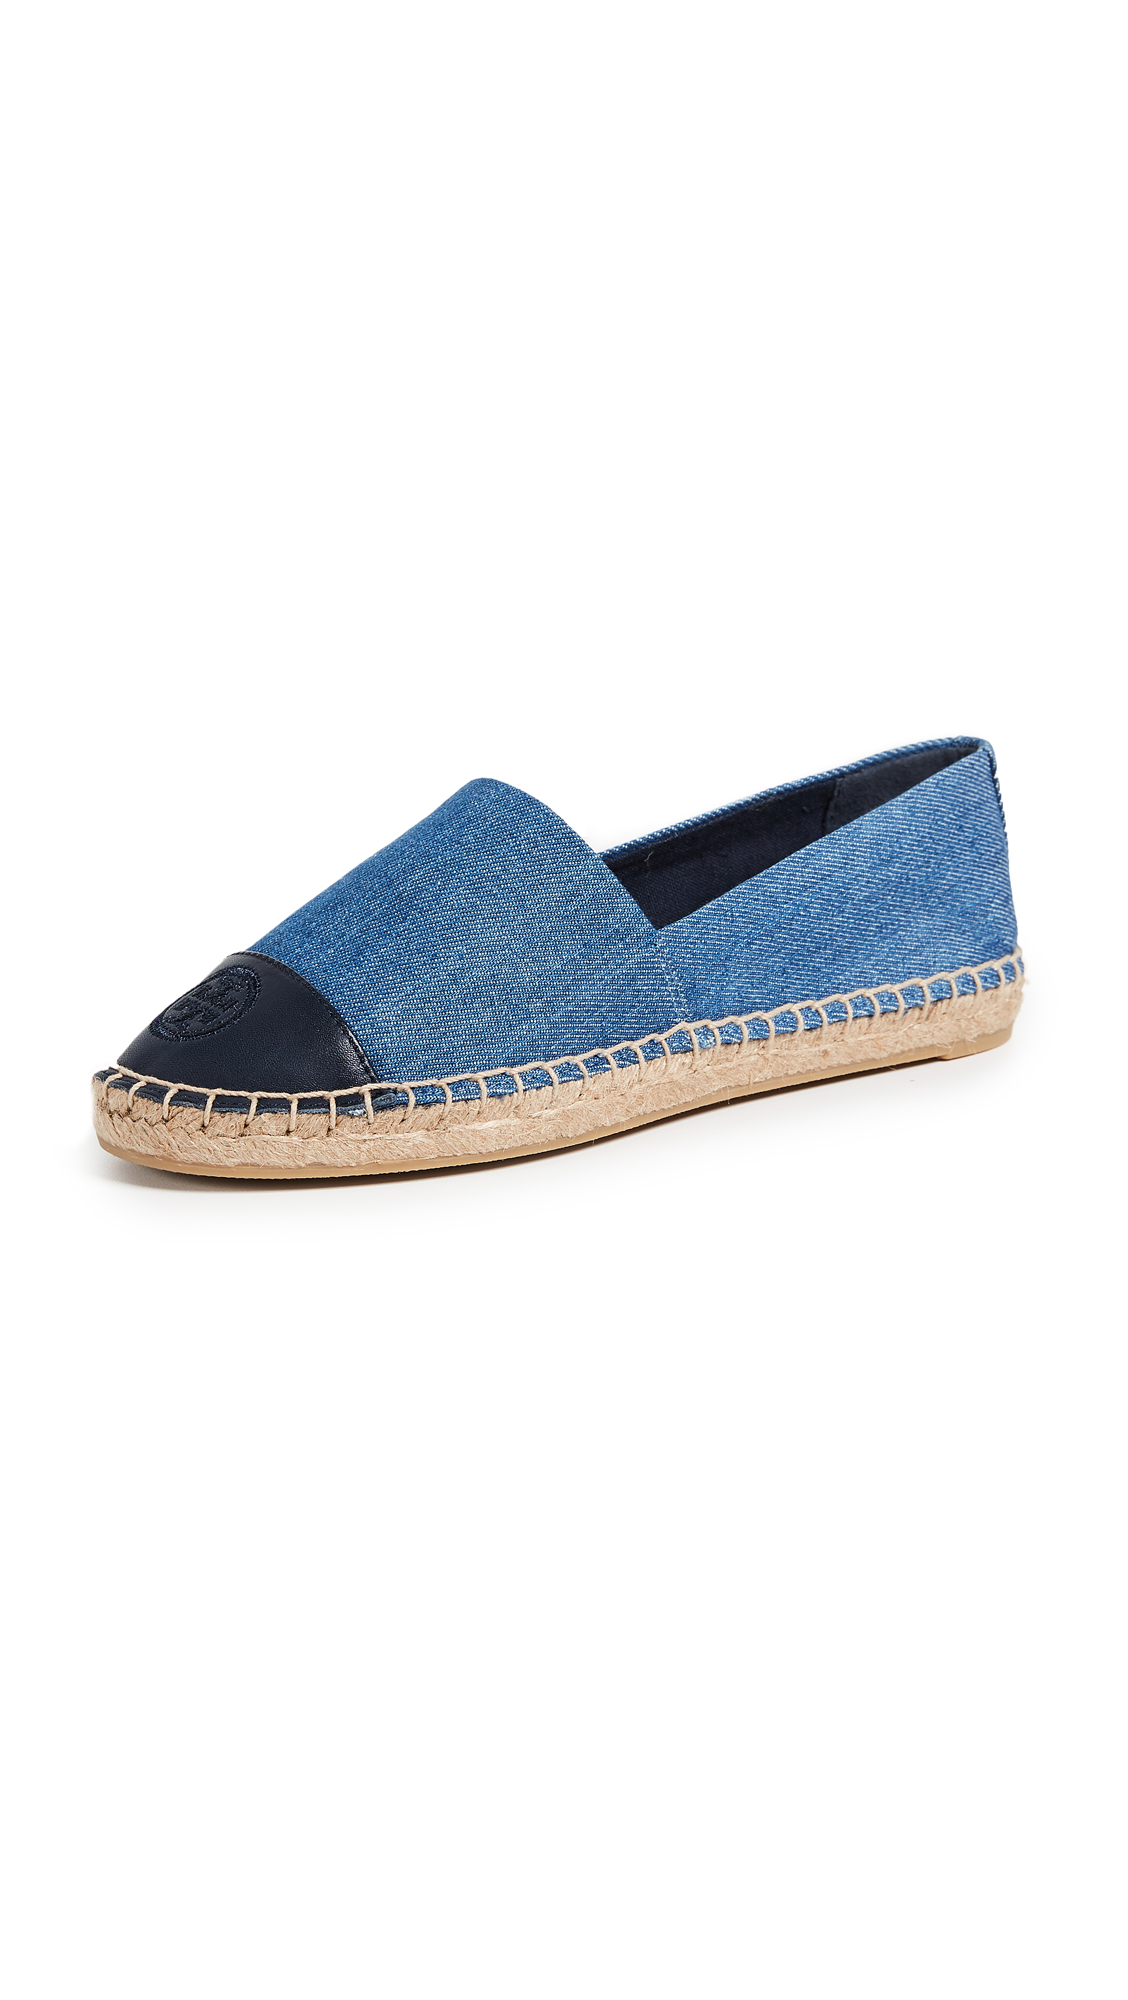 Tory Burch Denim Flat Espadrilles - Denim Chambray/Perfect Navy